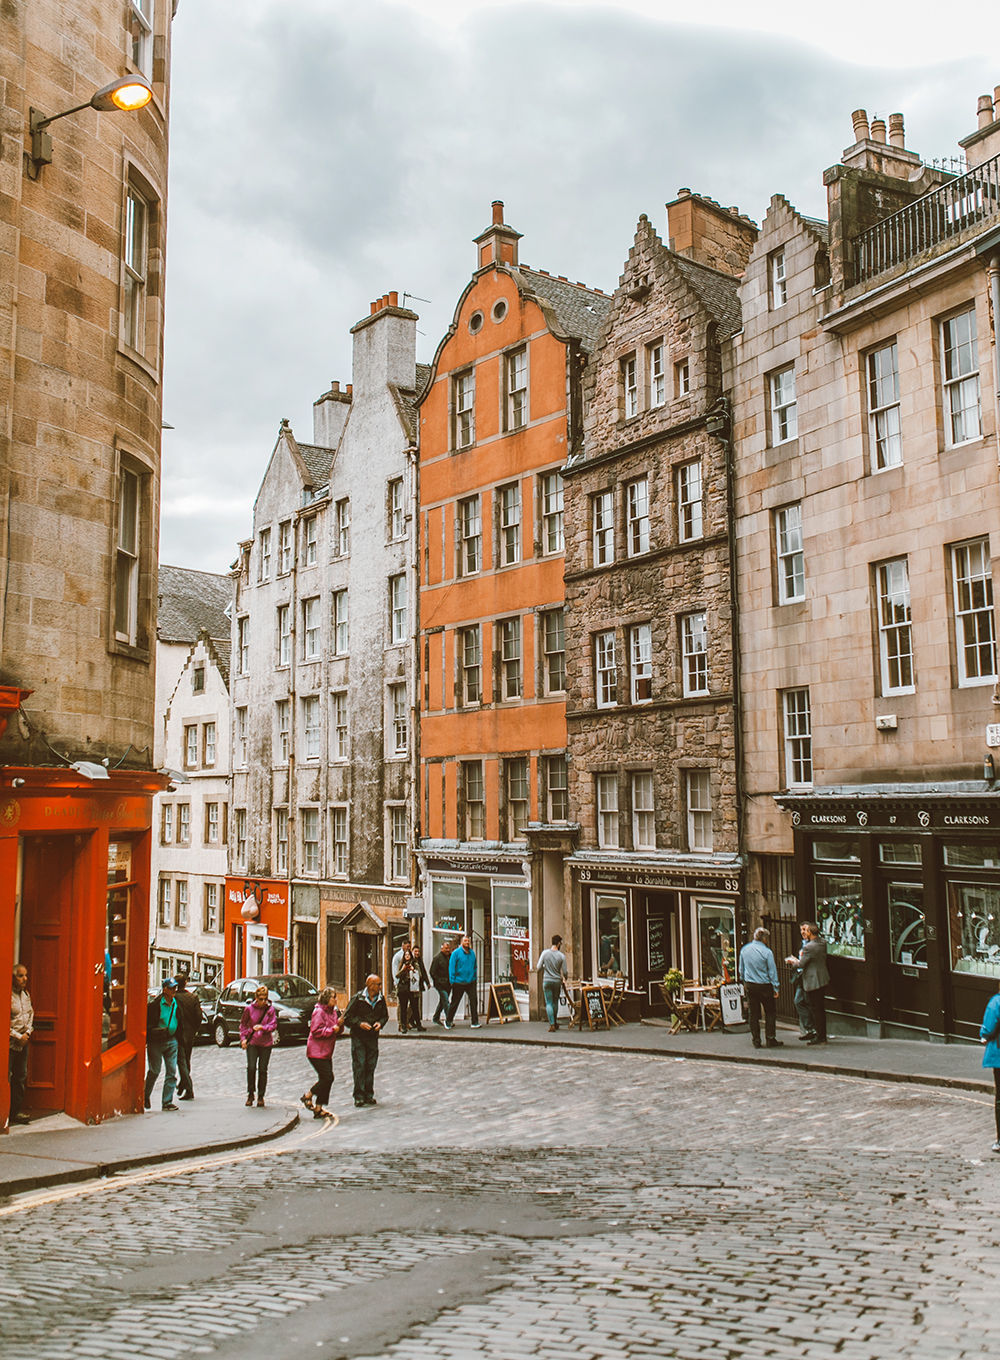 livvyland-blog-olivia-watson-things-to-do-edinburgh-scotland-day-trip-victorias-street-2